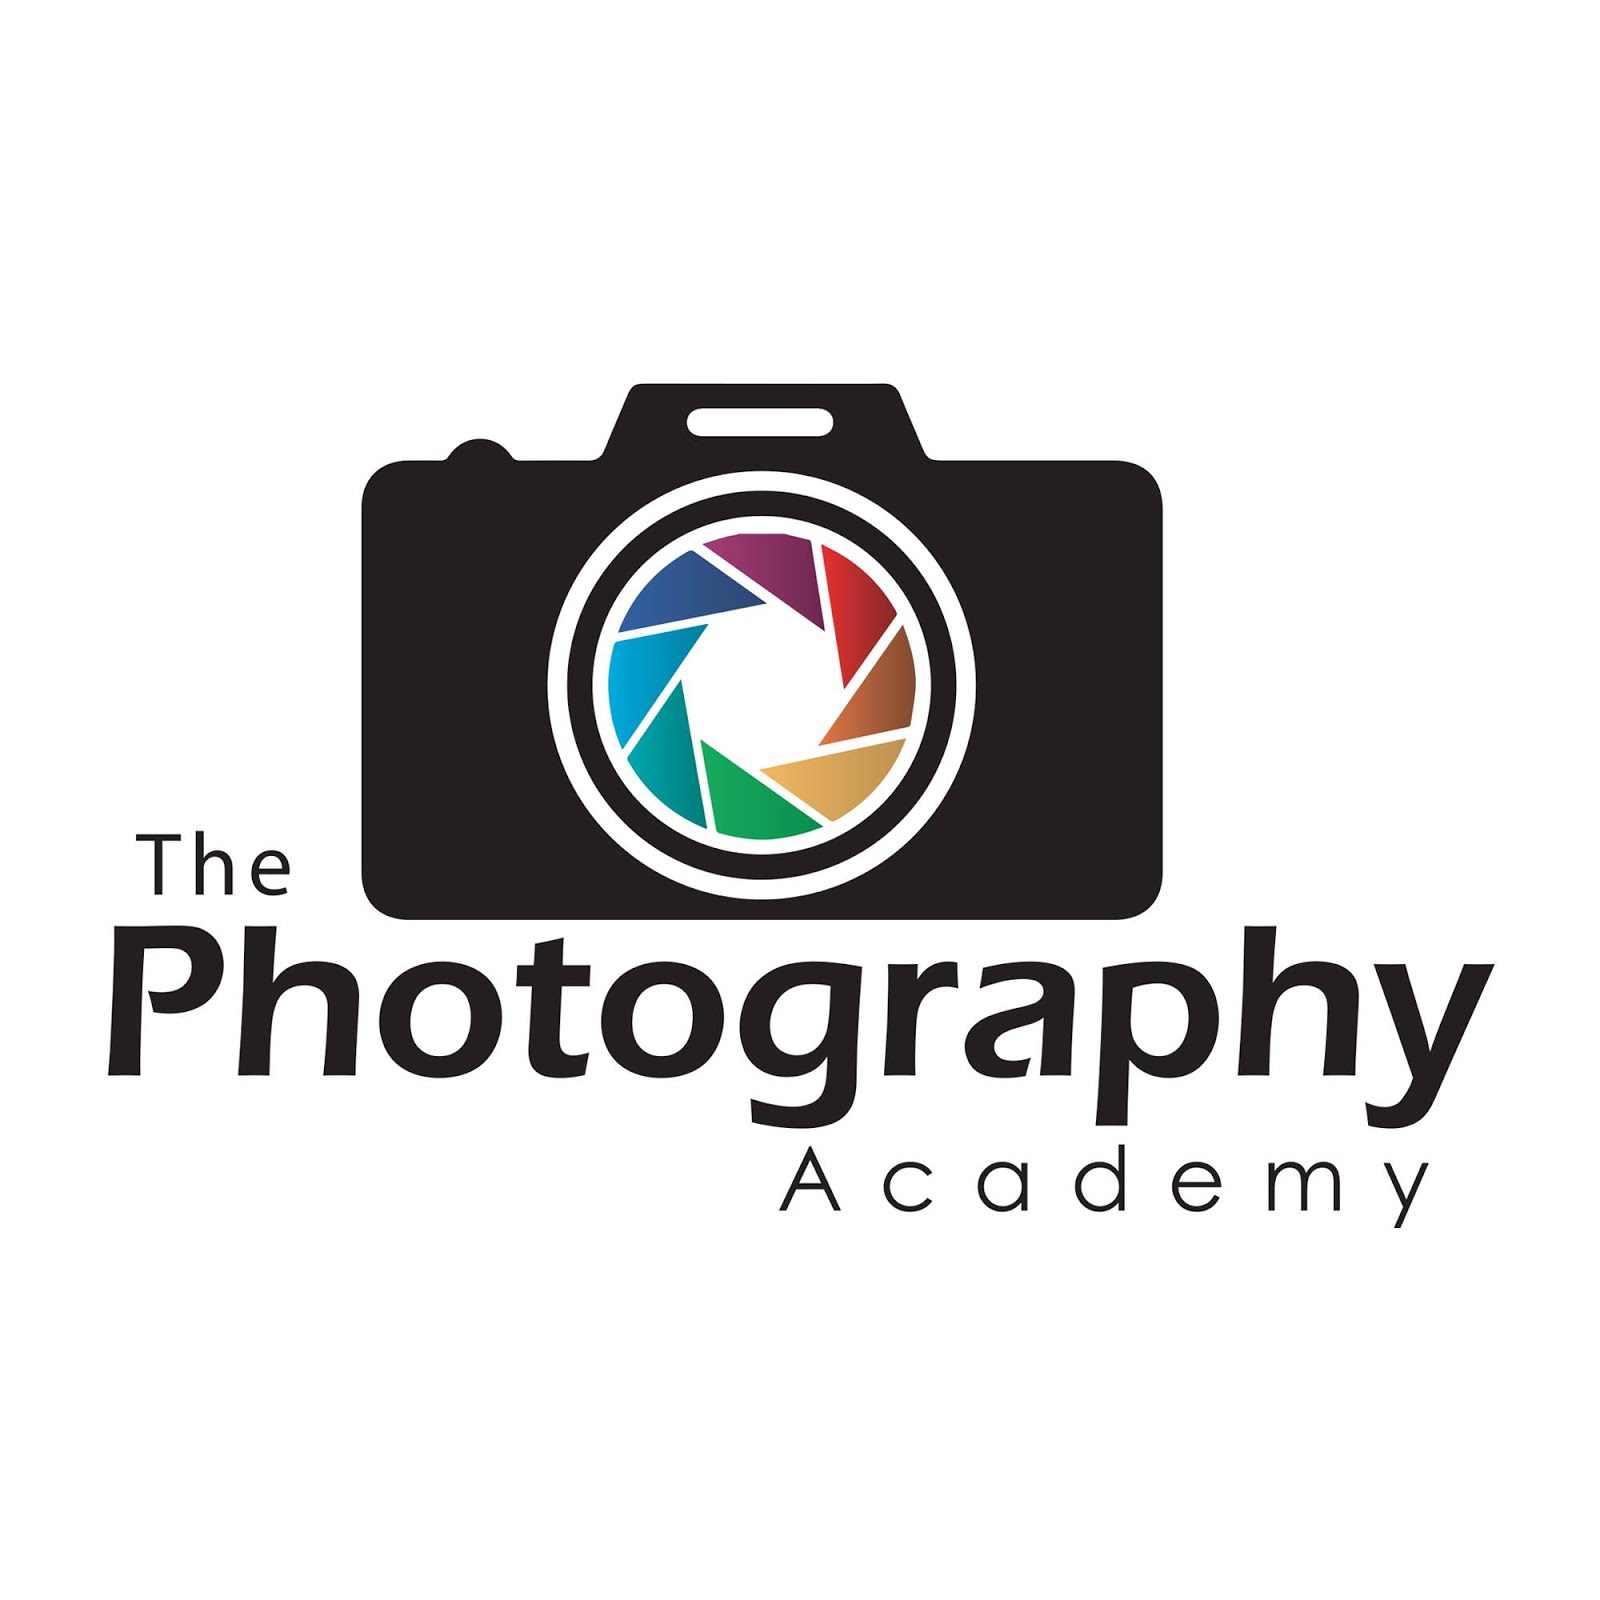 The Photography Academy